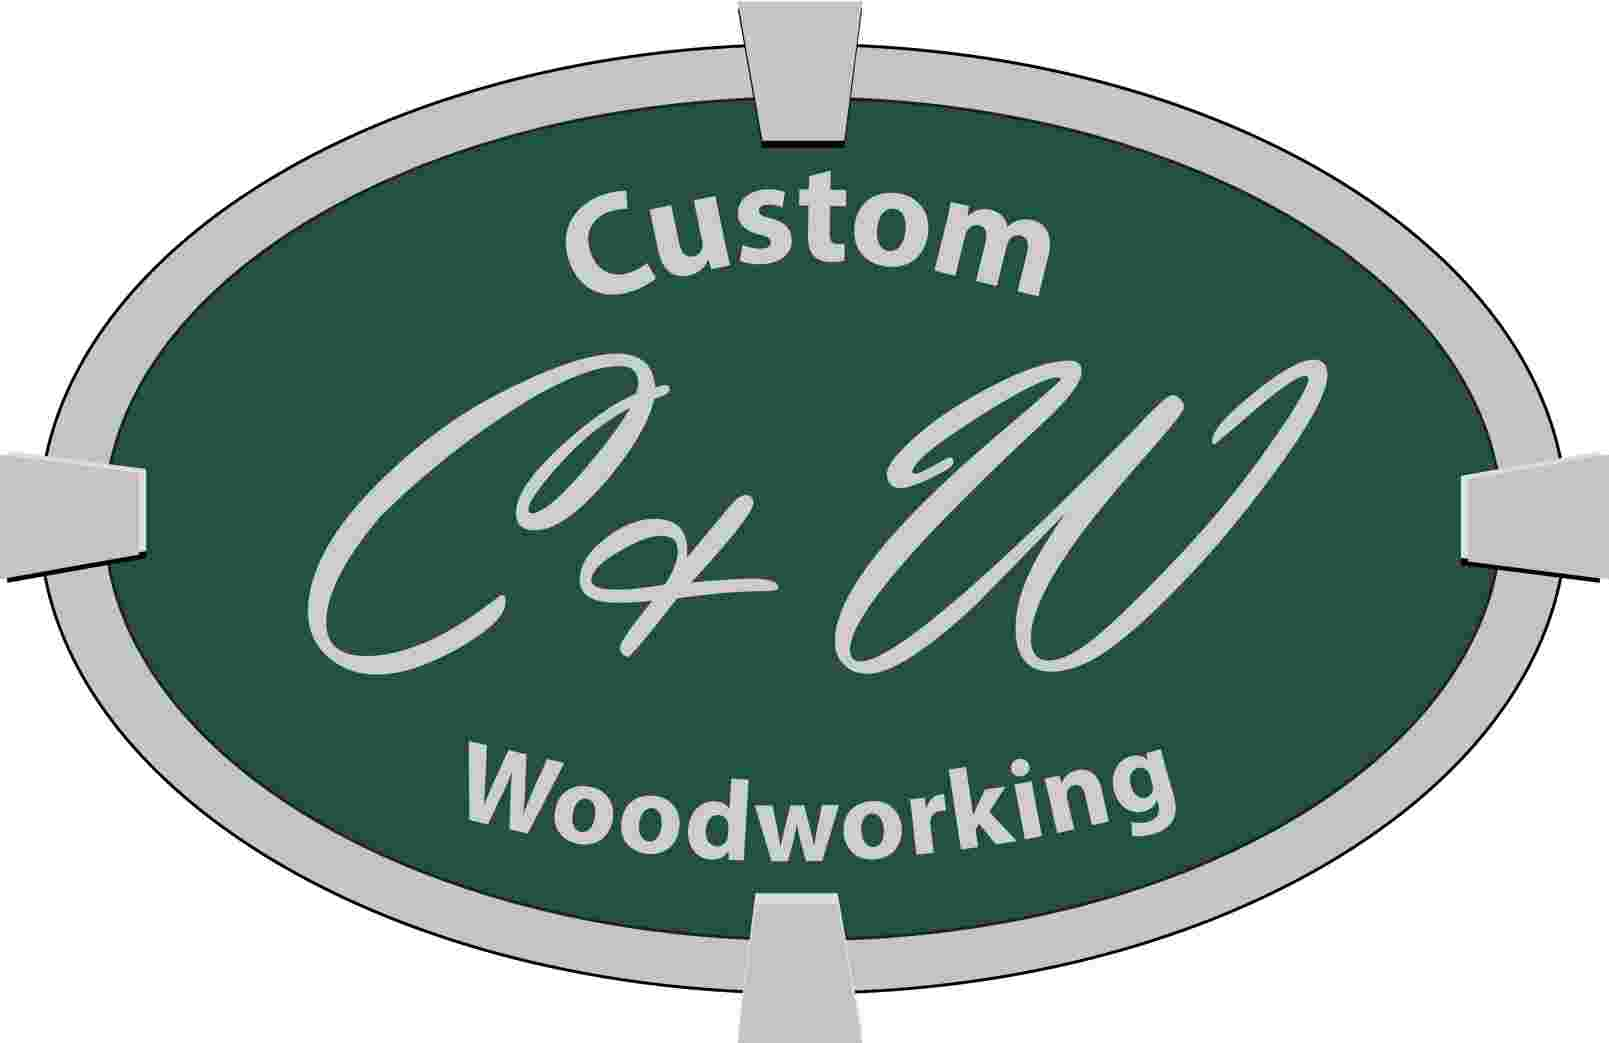 C & W Custom Woodworking logo